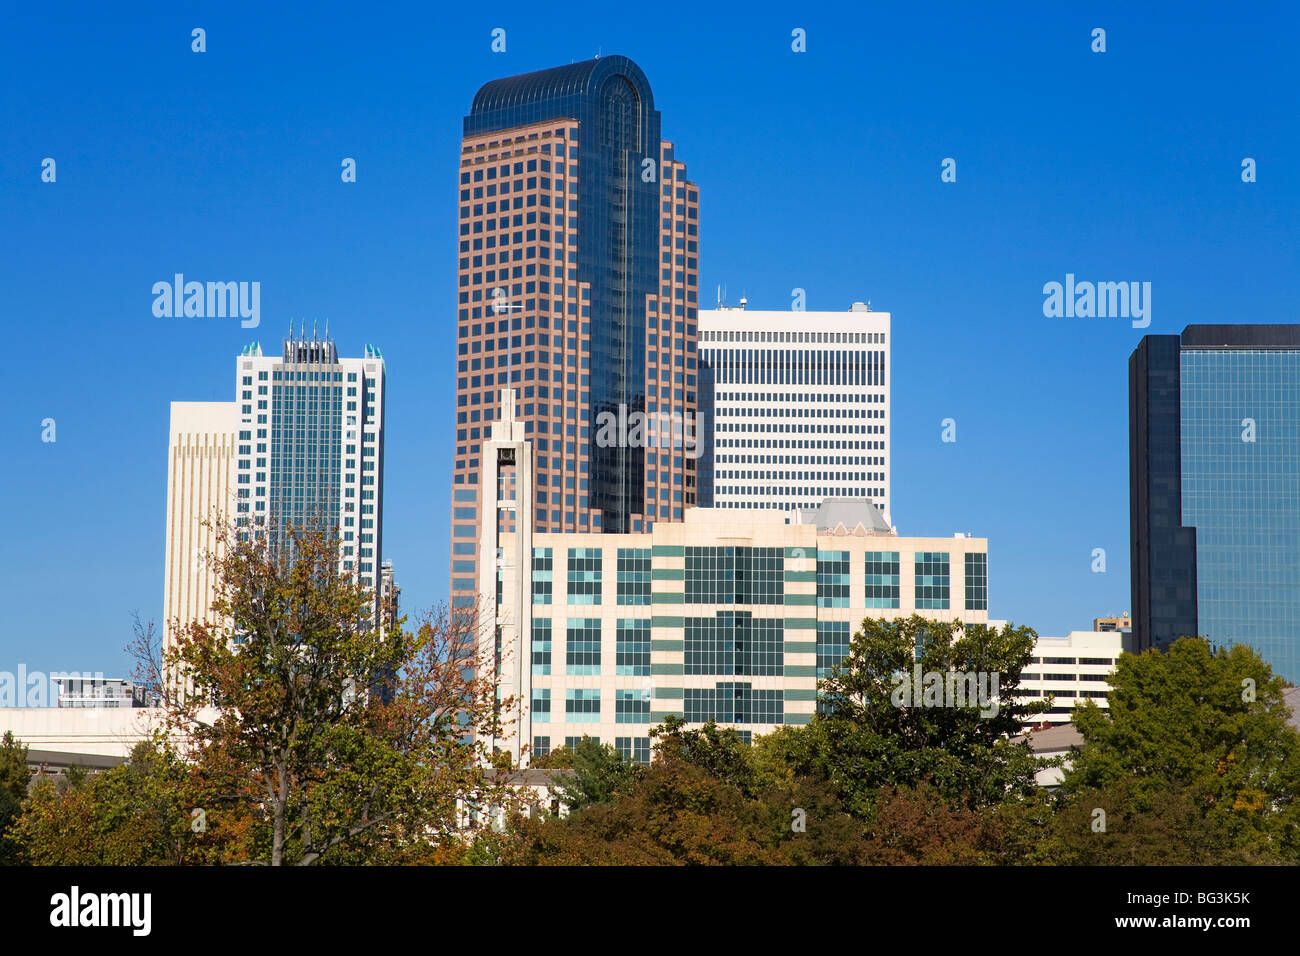 Marshall Park, Charlotte, North Carolina, United States of America, North America - Stock Image